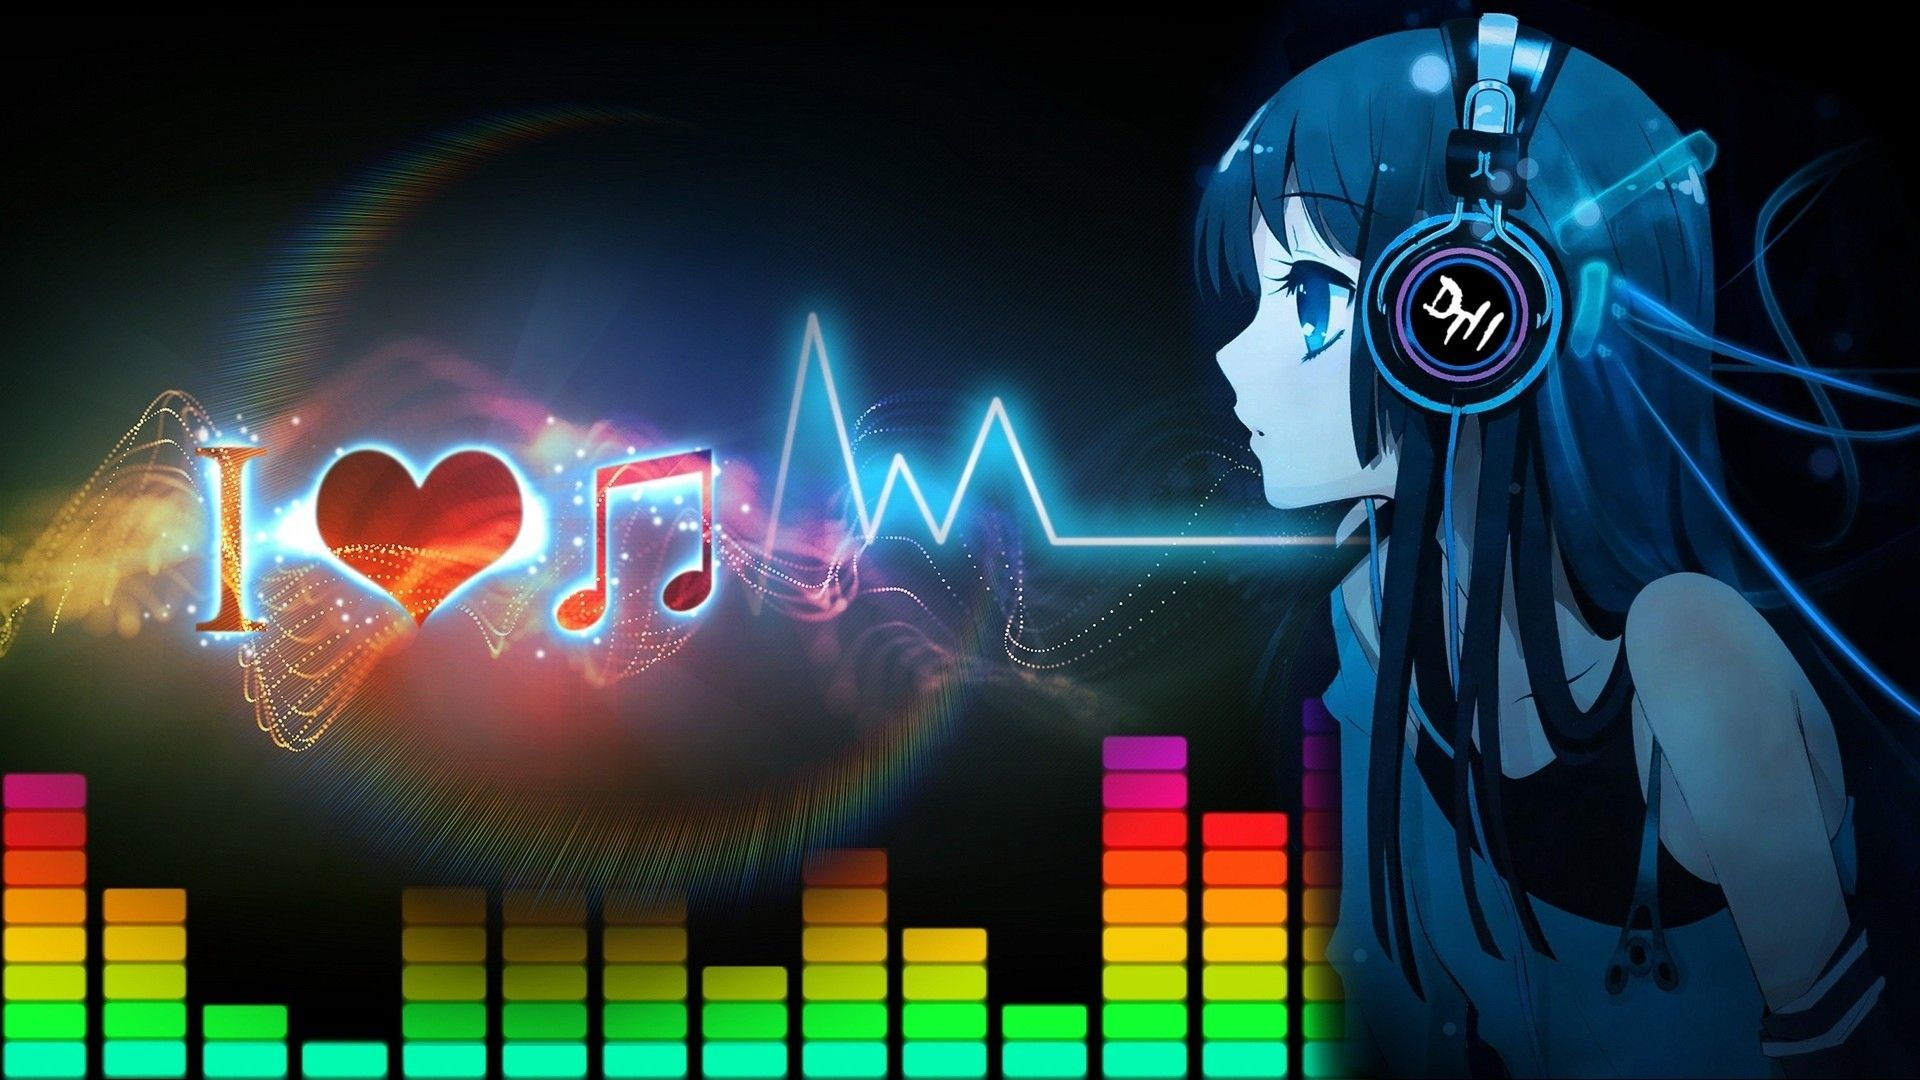 10 Best Anime Music Wallpaper 1920X1080 FULL HD 1920×1080